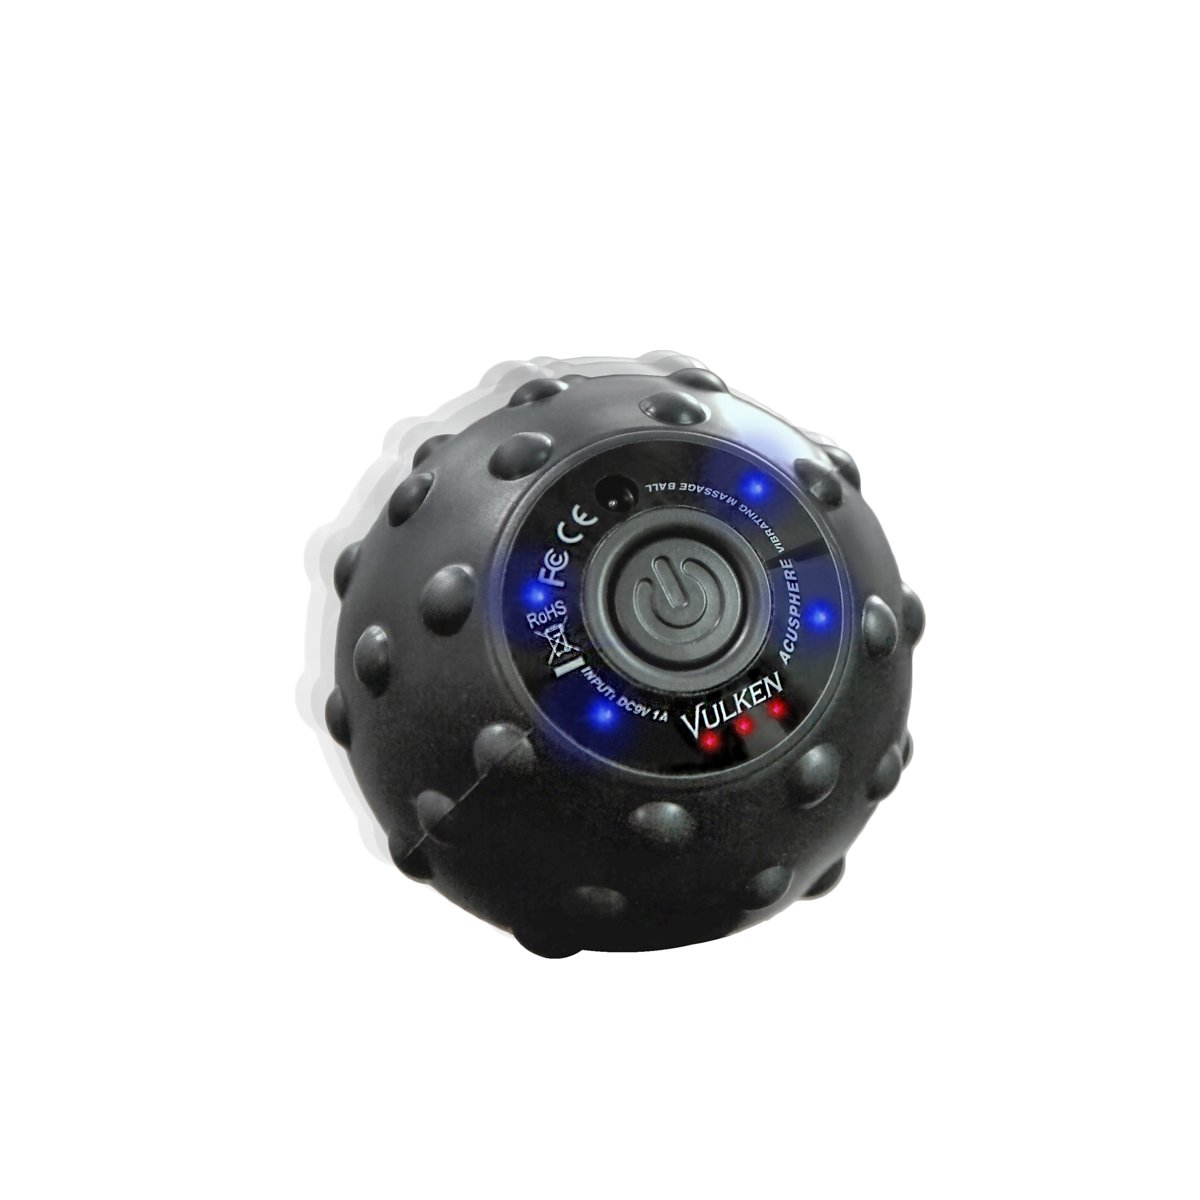 Vulken Acusphere 4 Speed High Intensity Vibrating Massage Ball for Muscle and Fitness, Plantar Fasciitis Pain Relief, Myofascial Release and Trigger Point Treatment (Black (Long Press))